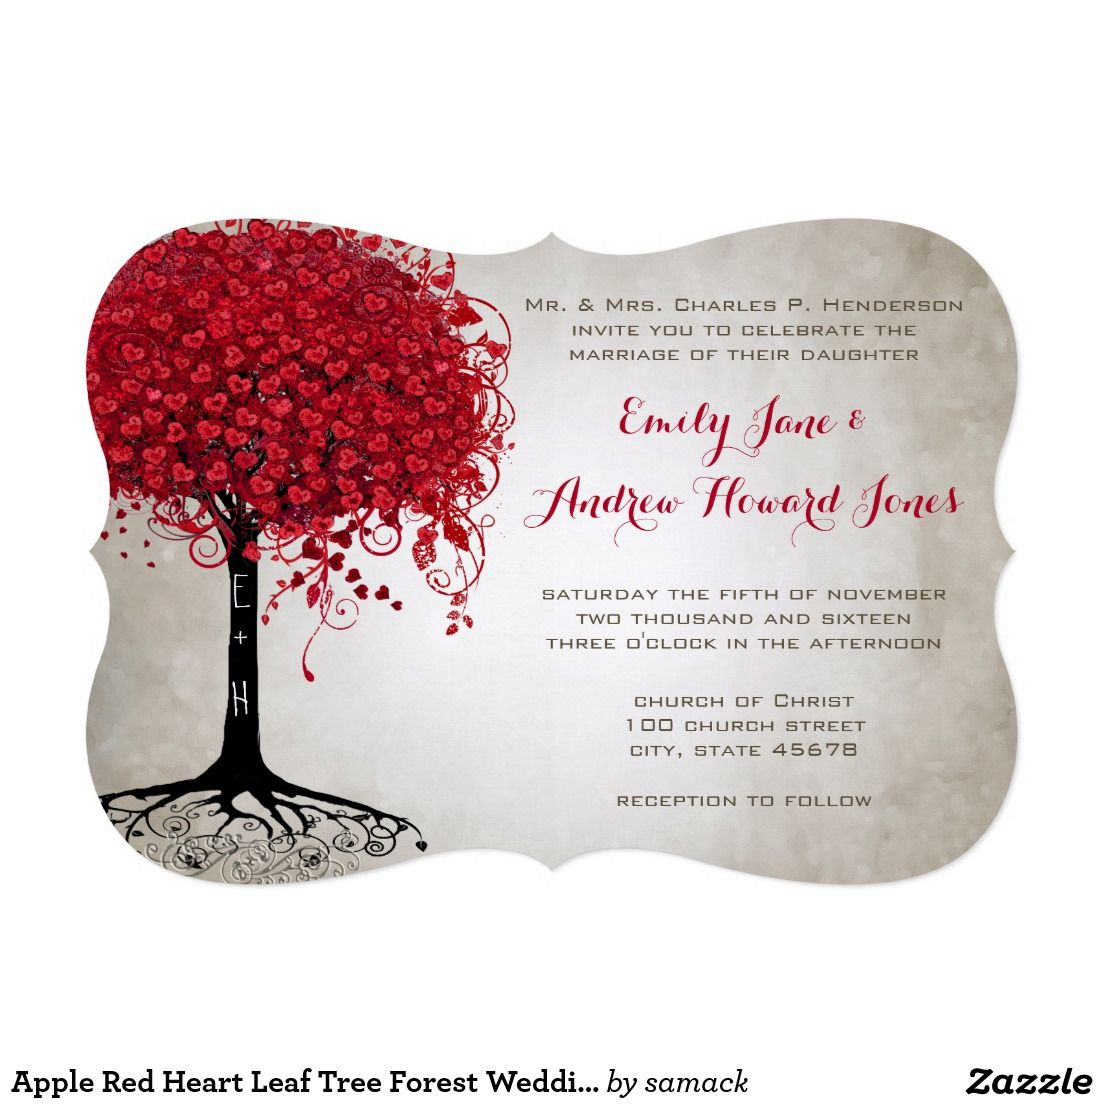 Apple Red Heart Leaf Tree Forest Wedding Invitation | Business Cards ...